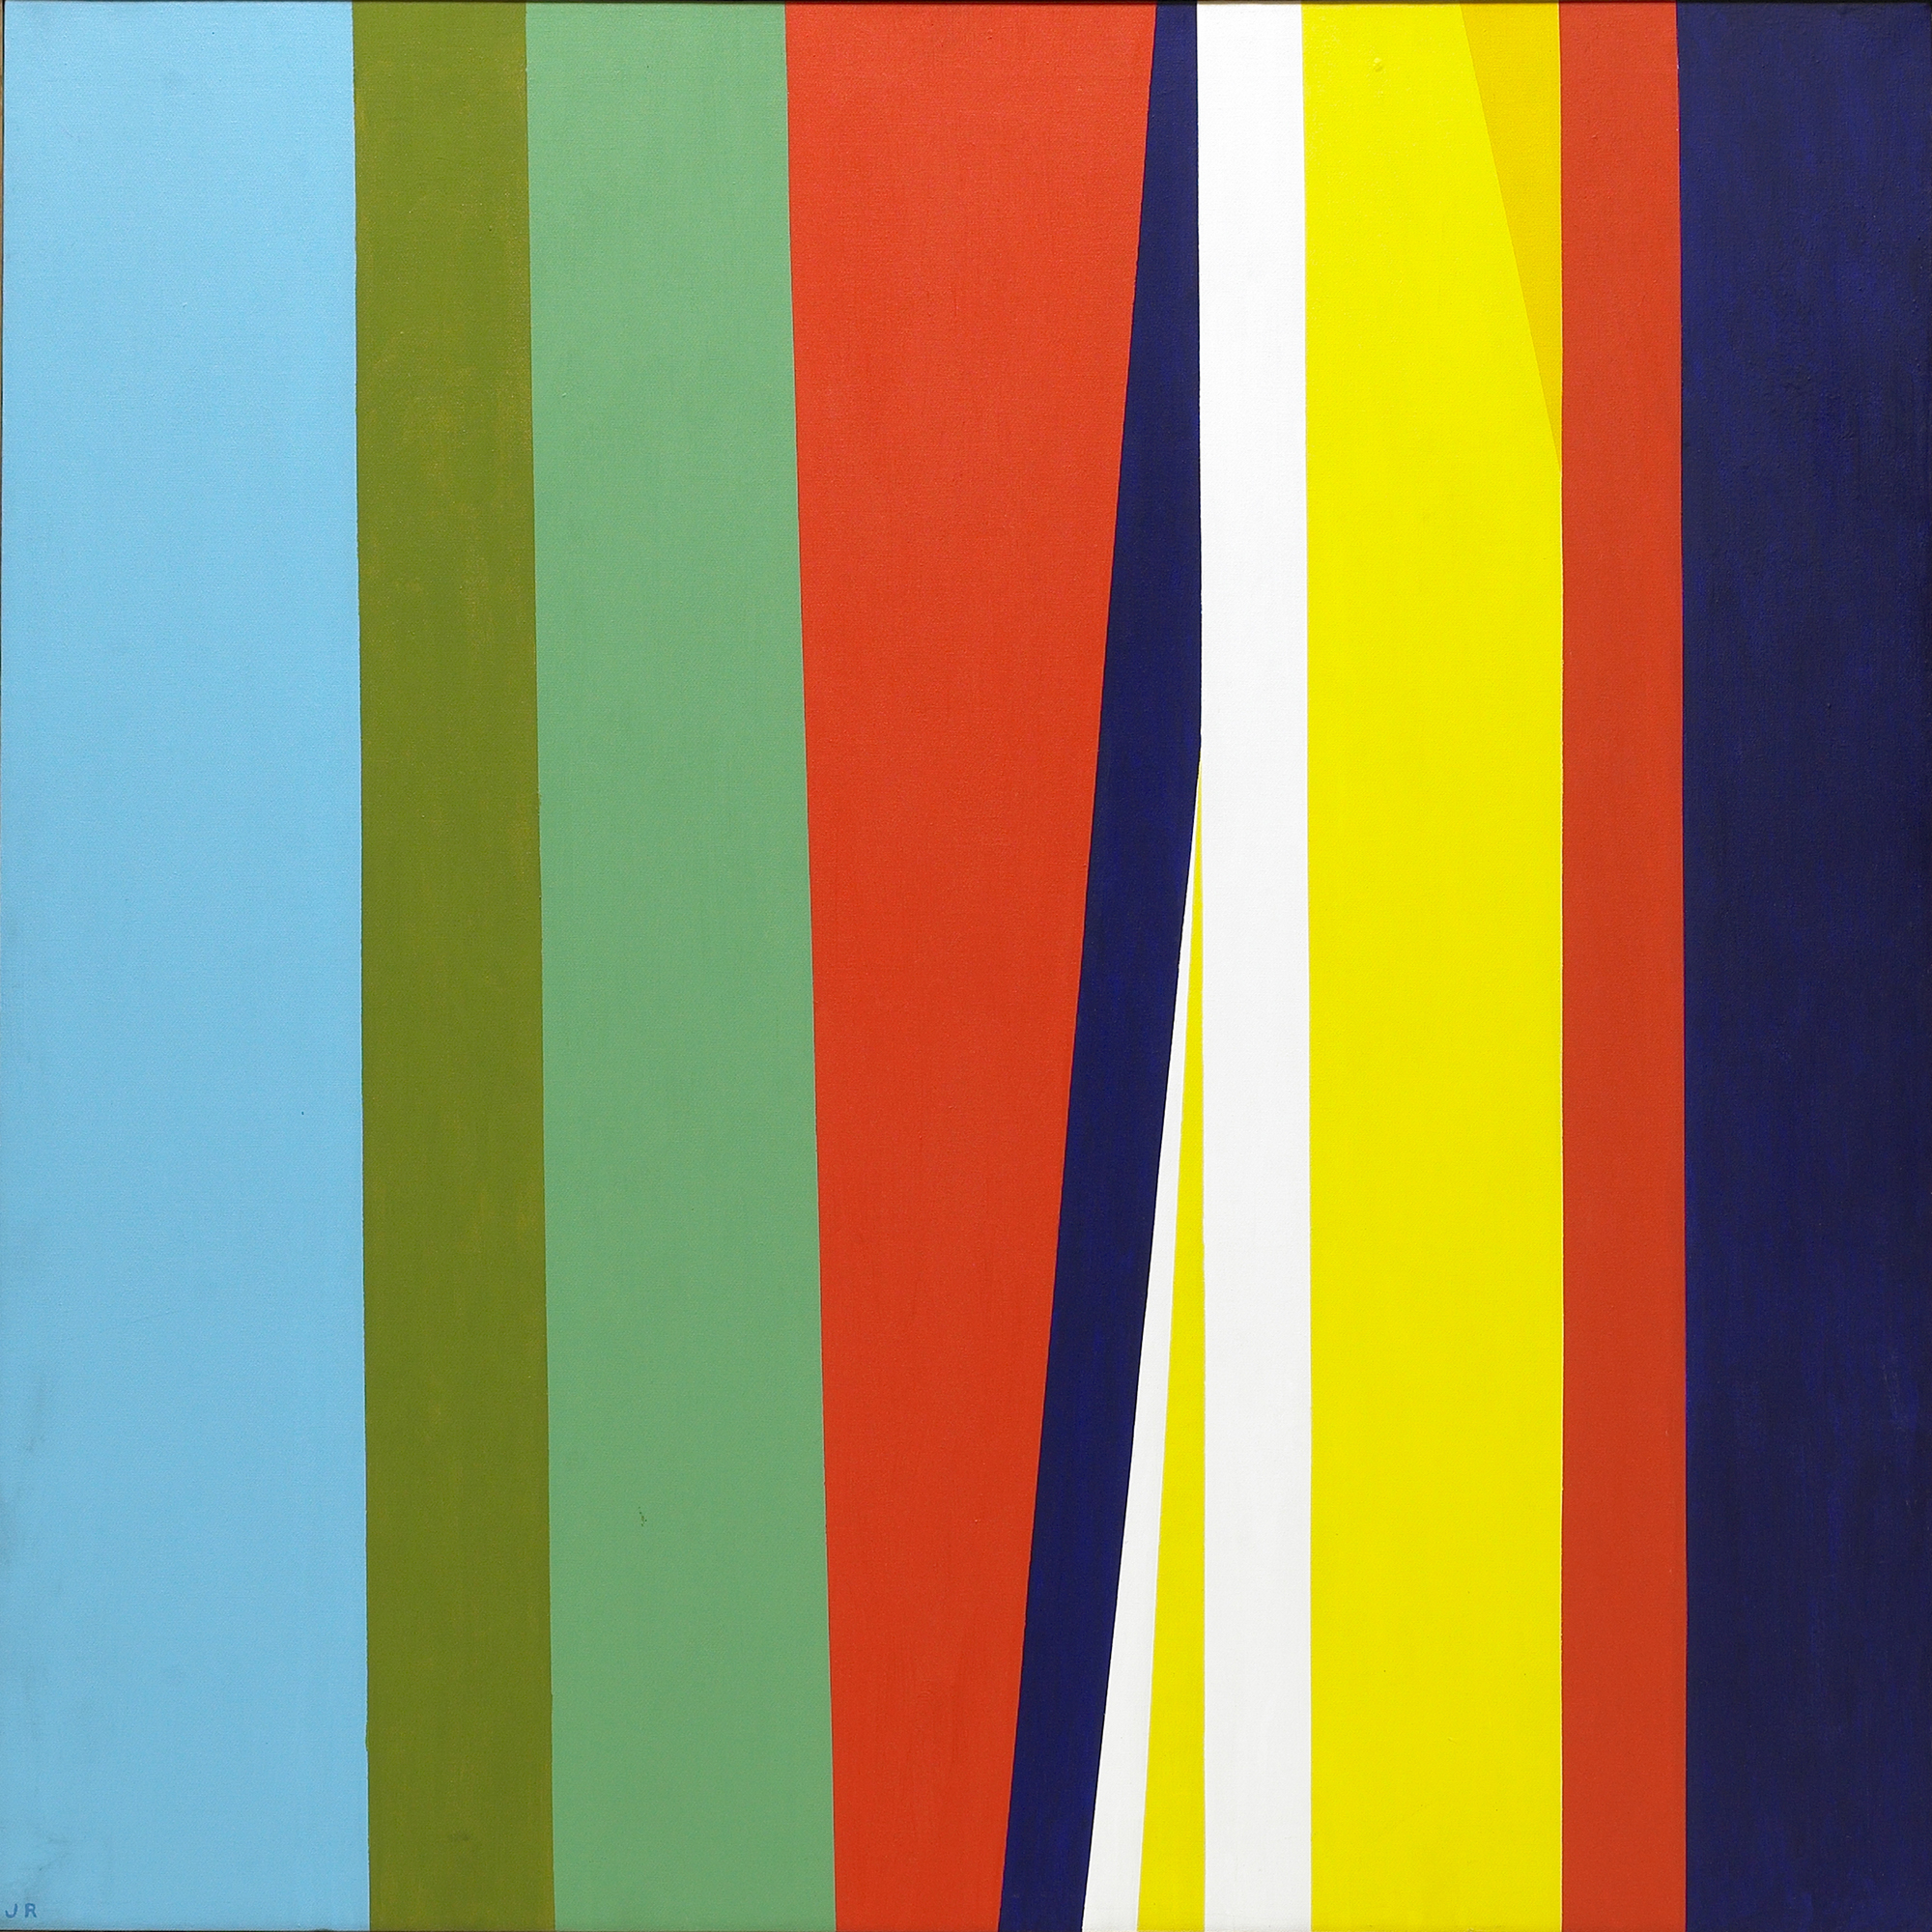 Untitled, 1969  , oil on canvas, 40 x 40 inches